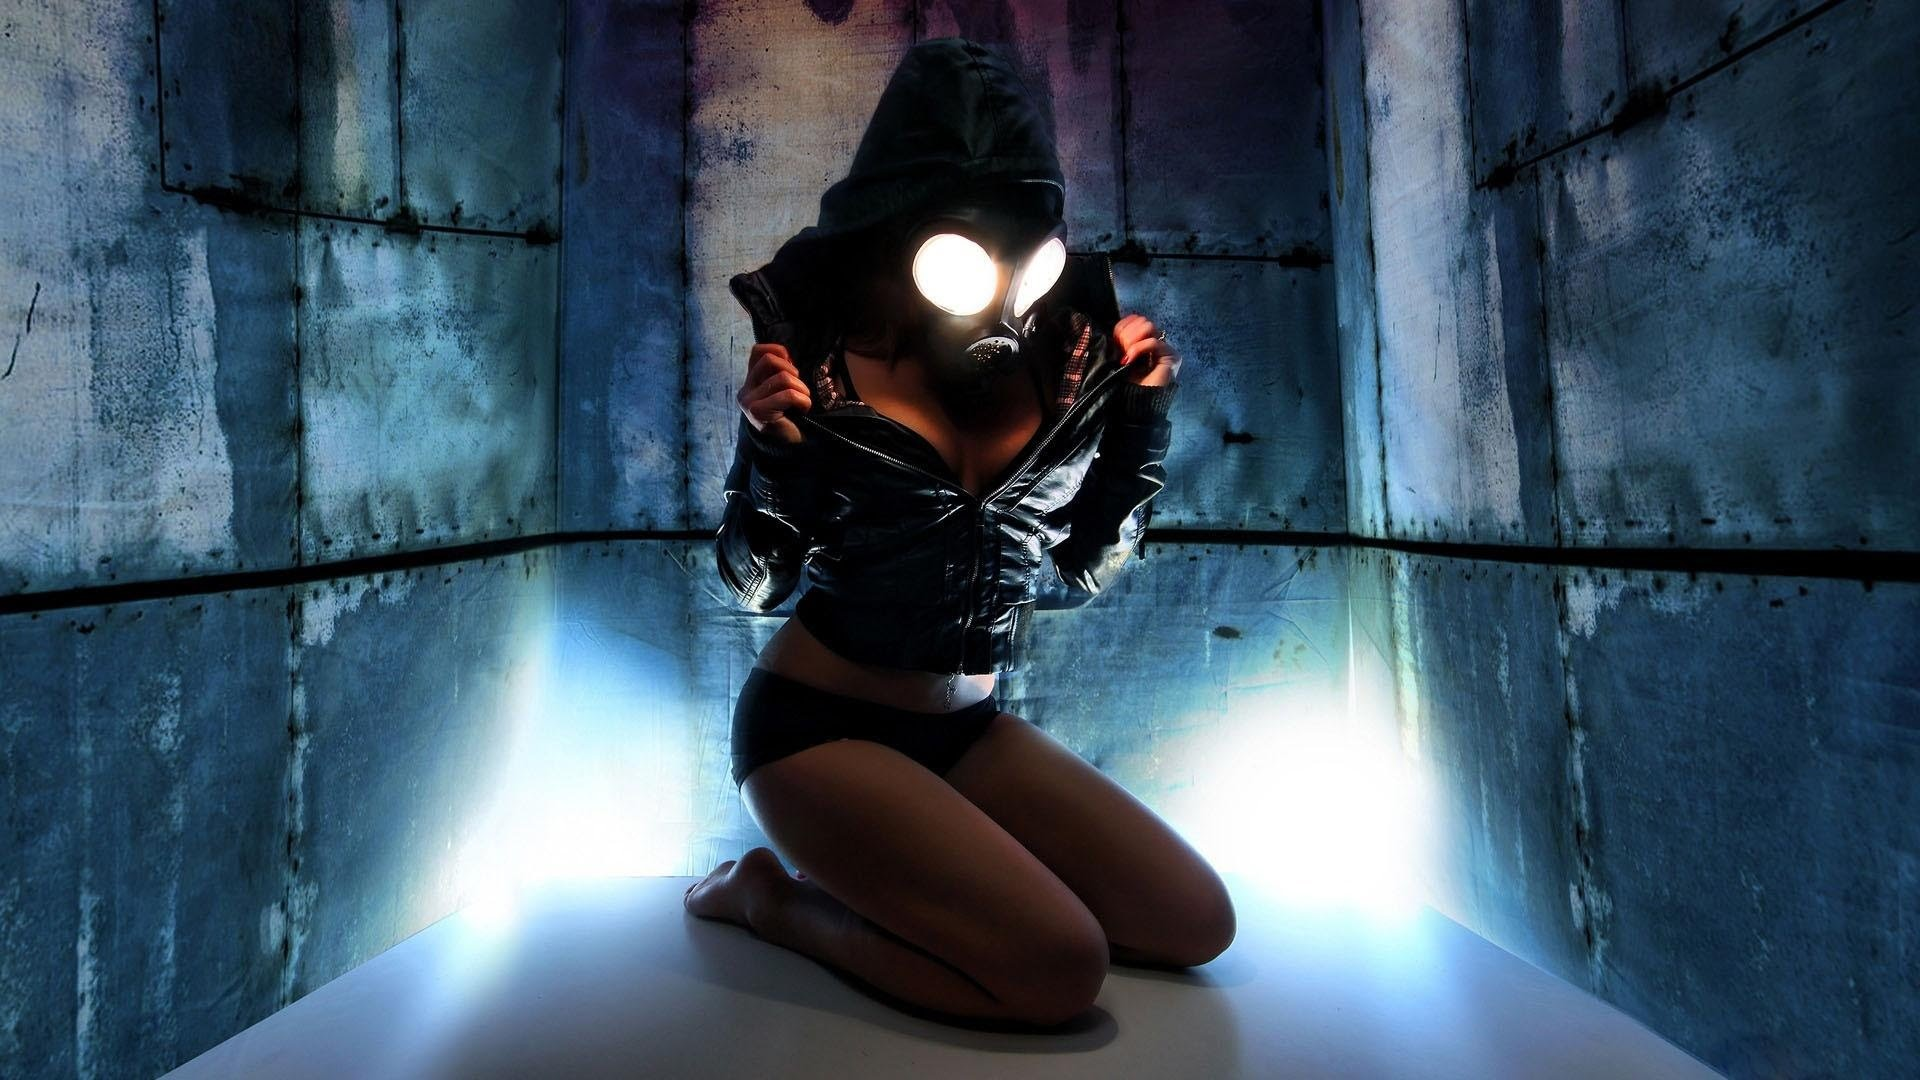 Girls Dubstep Wallpaper Dubstep Gas Mask Wallpaper 66 Images